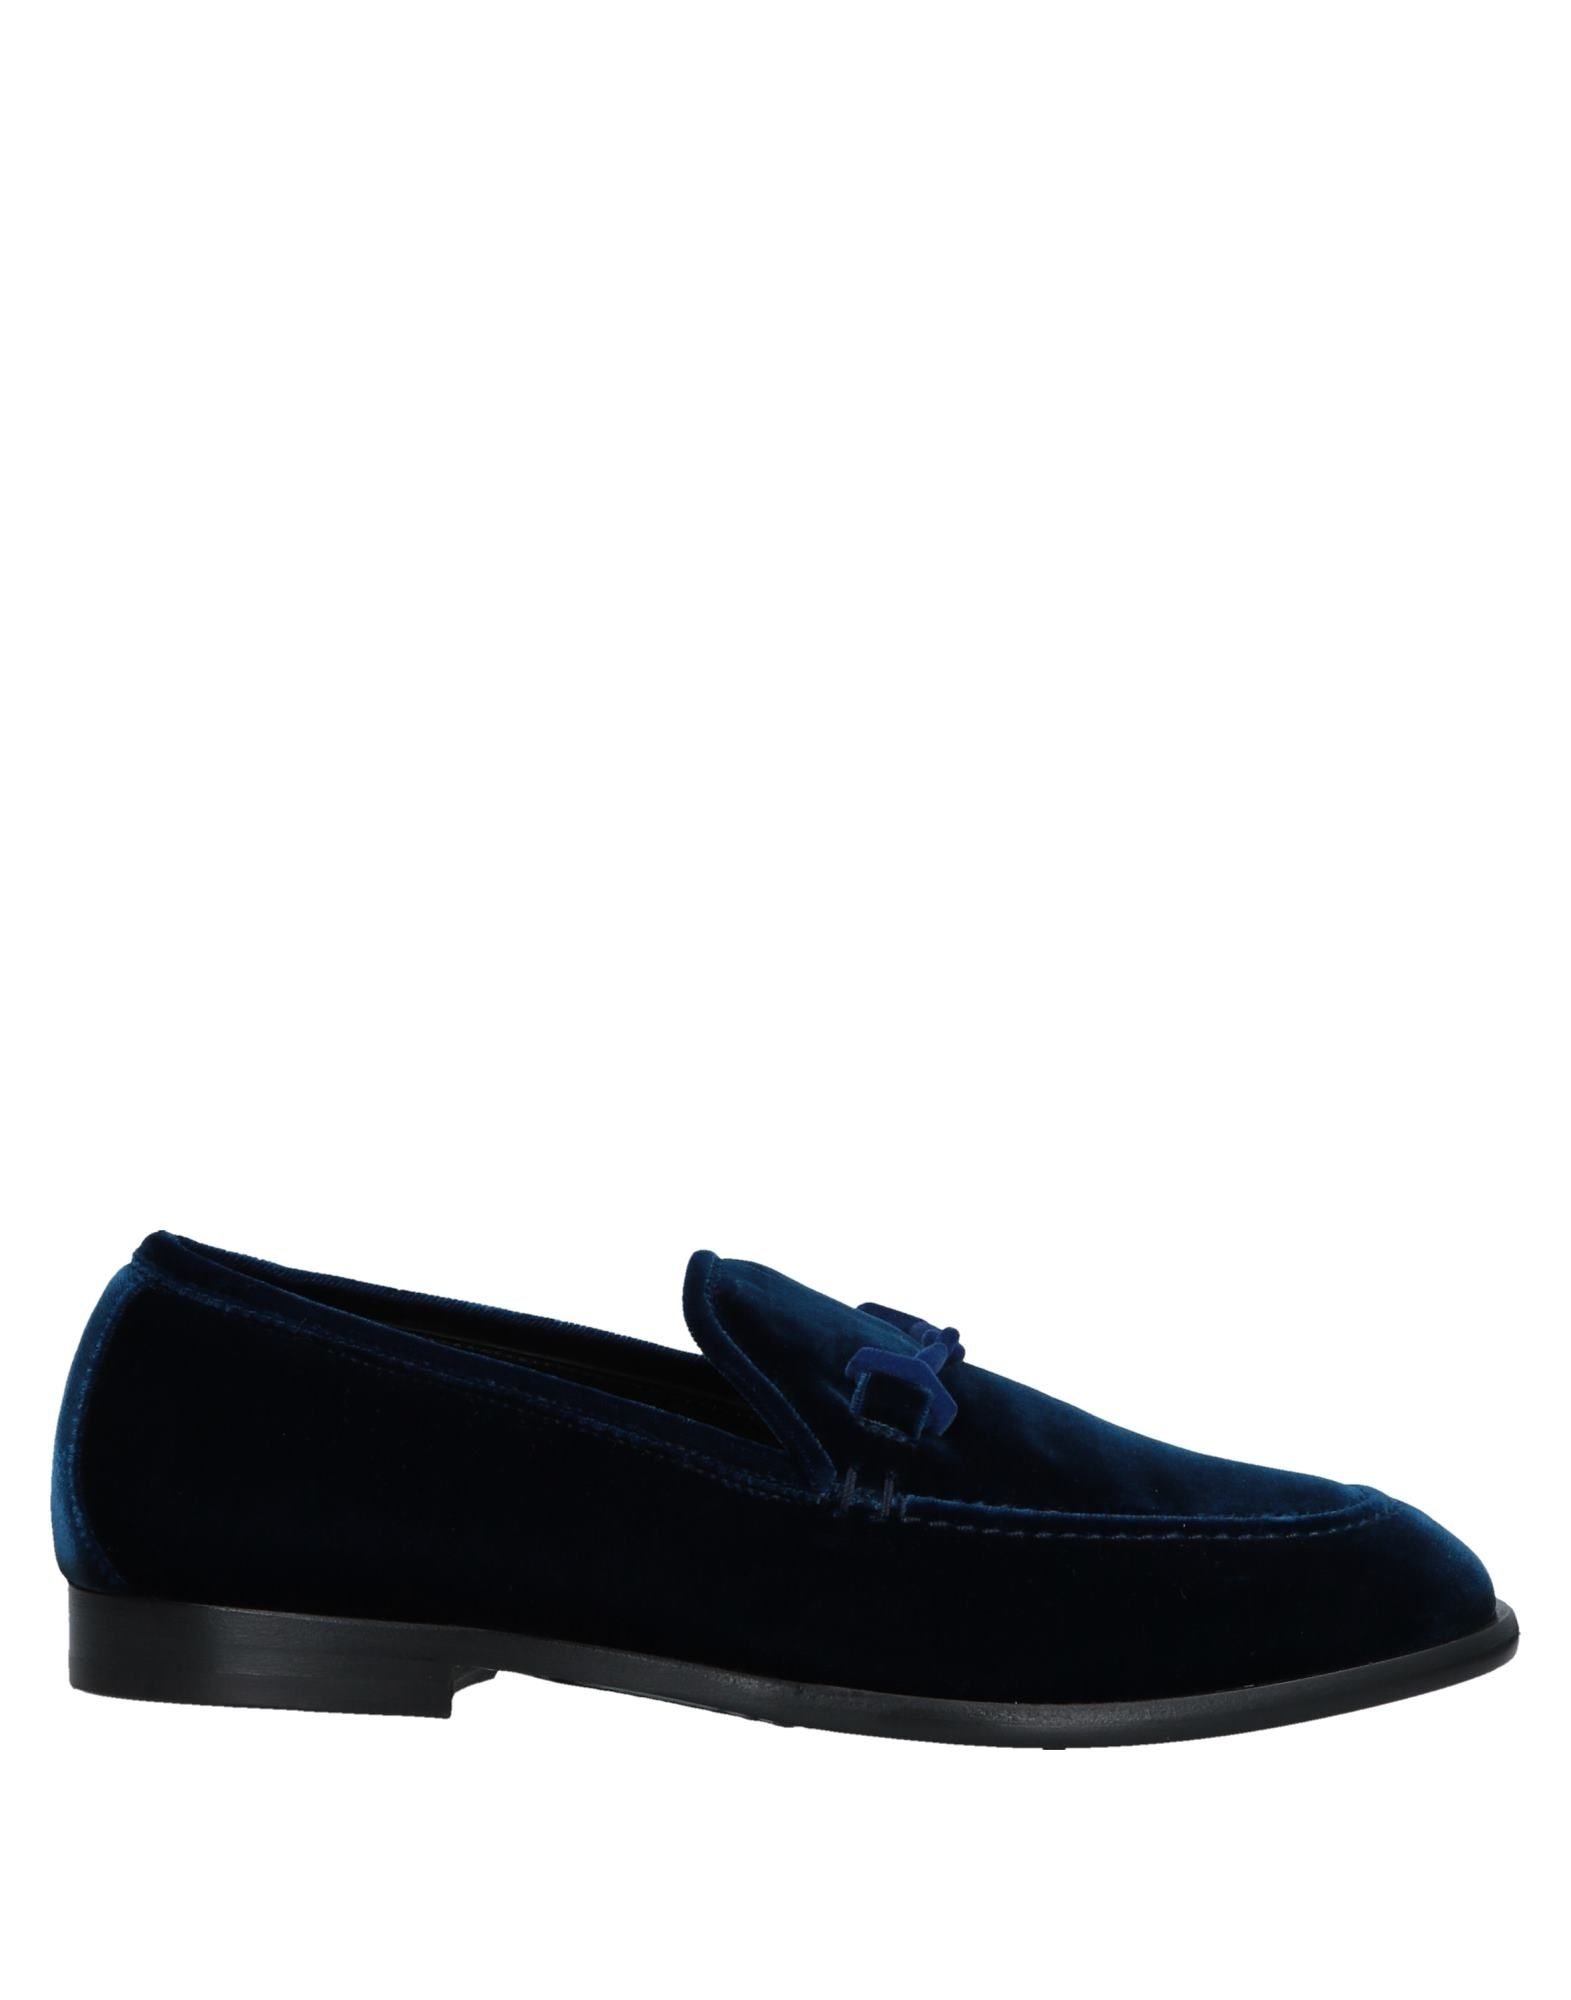 Jimmy Choo Loafers Loafers - Women Jimmy Choo Loafers Loafers online on  Canada - 11573402DR 982546